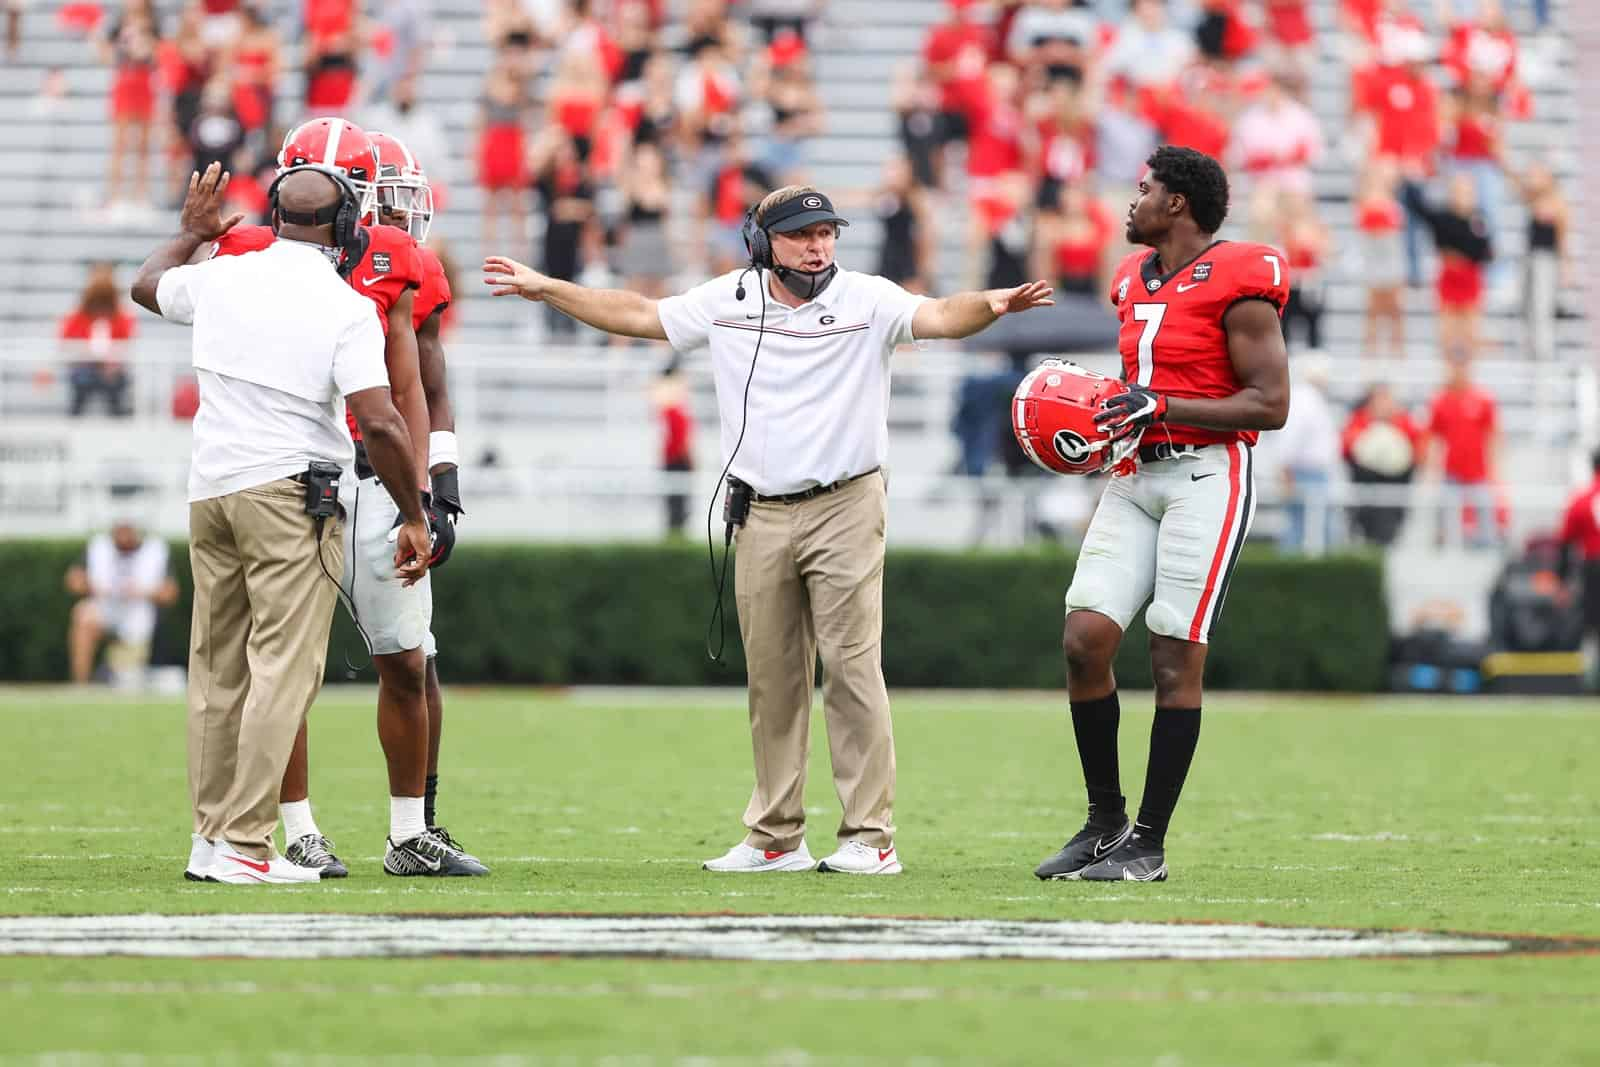 Kirby Smart Bulldogs Preview 2020 Football Game At Alabama He was drafted by the st. kirby smart bulldogs preview 2020